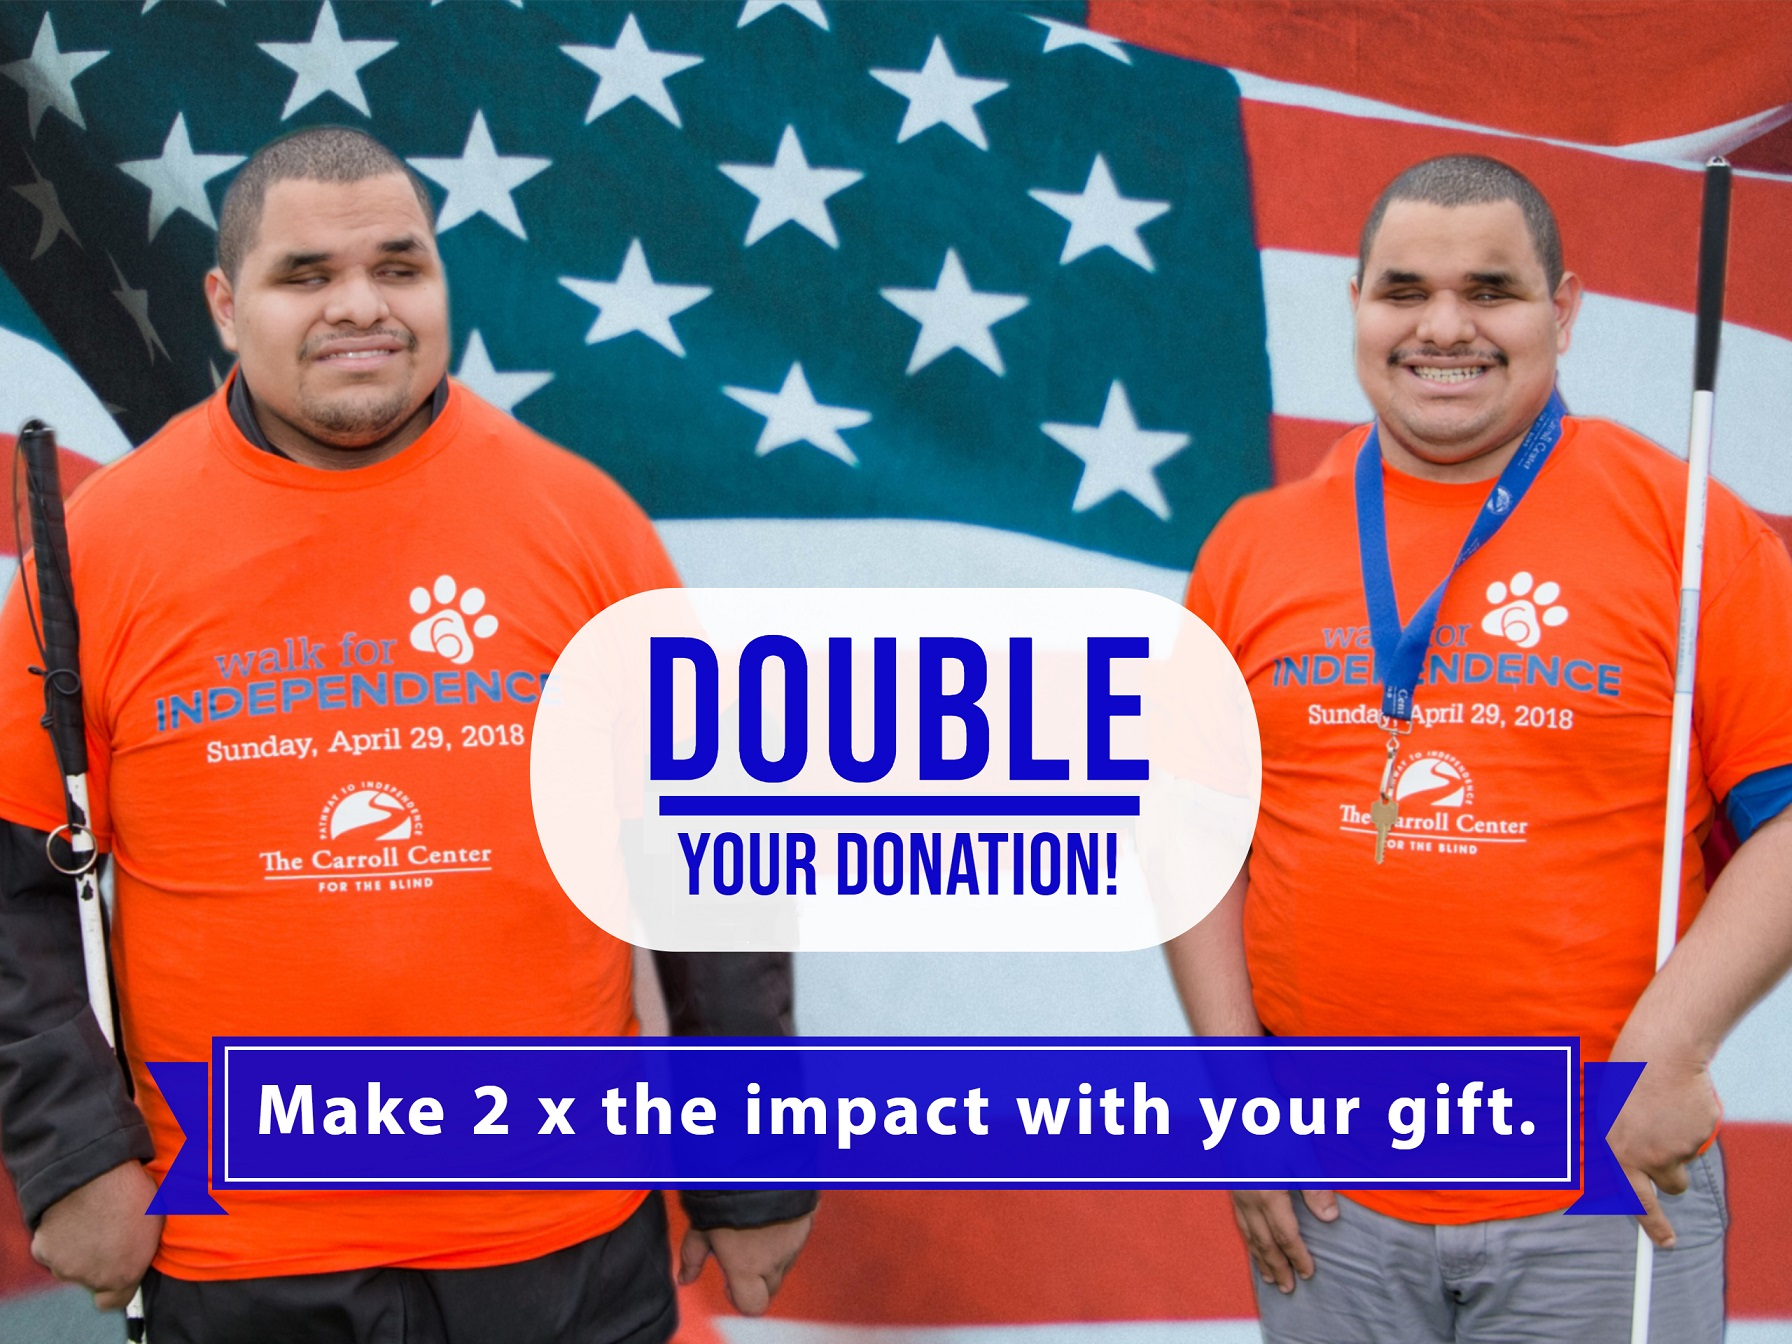 Double your Donation! Make twice the impact with your gift